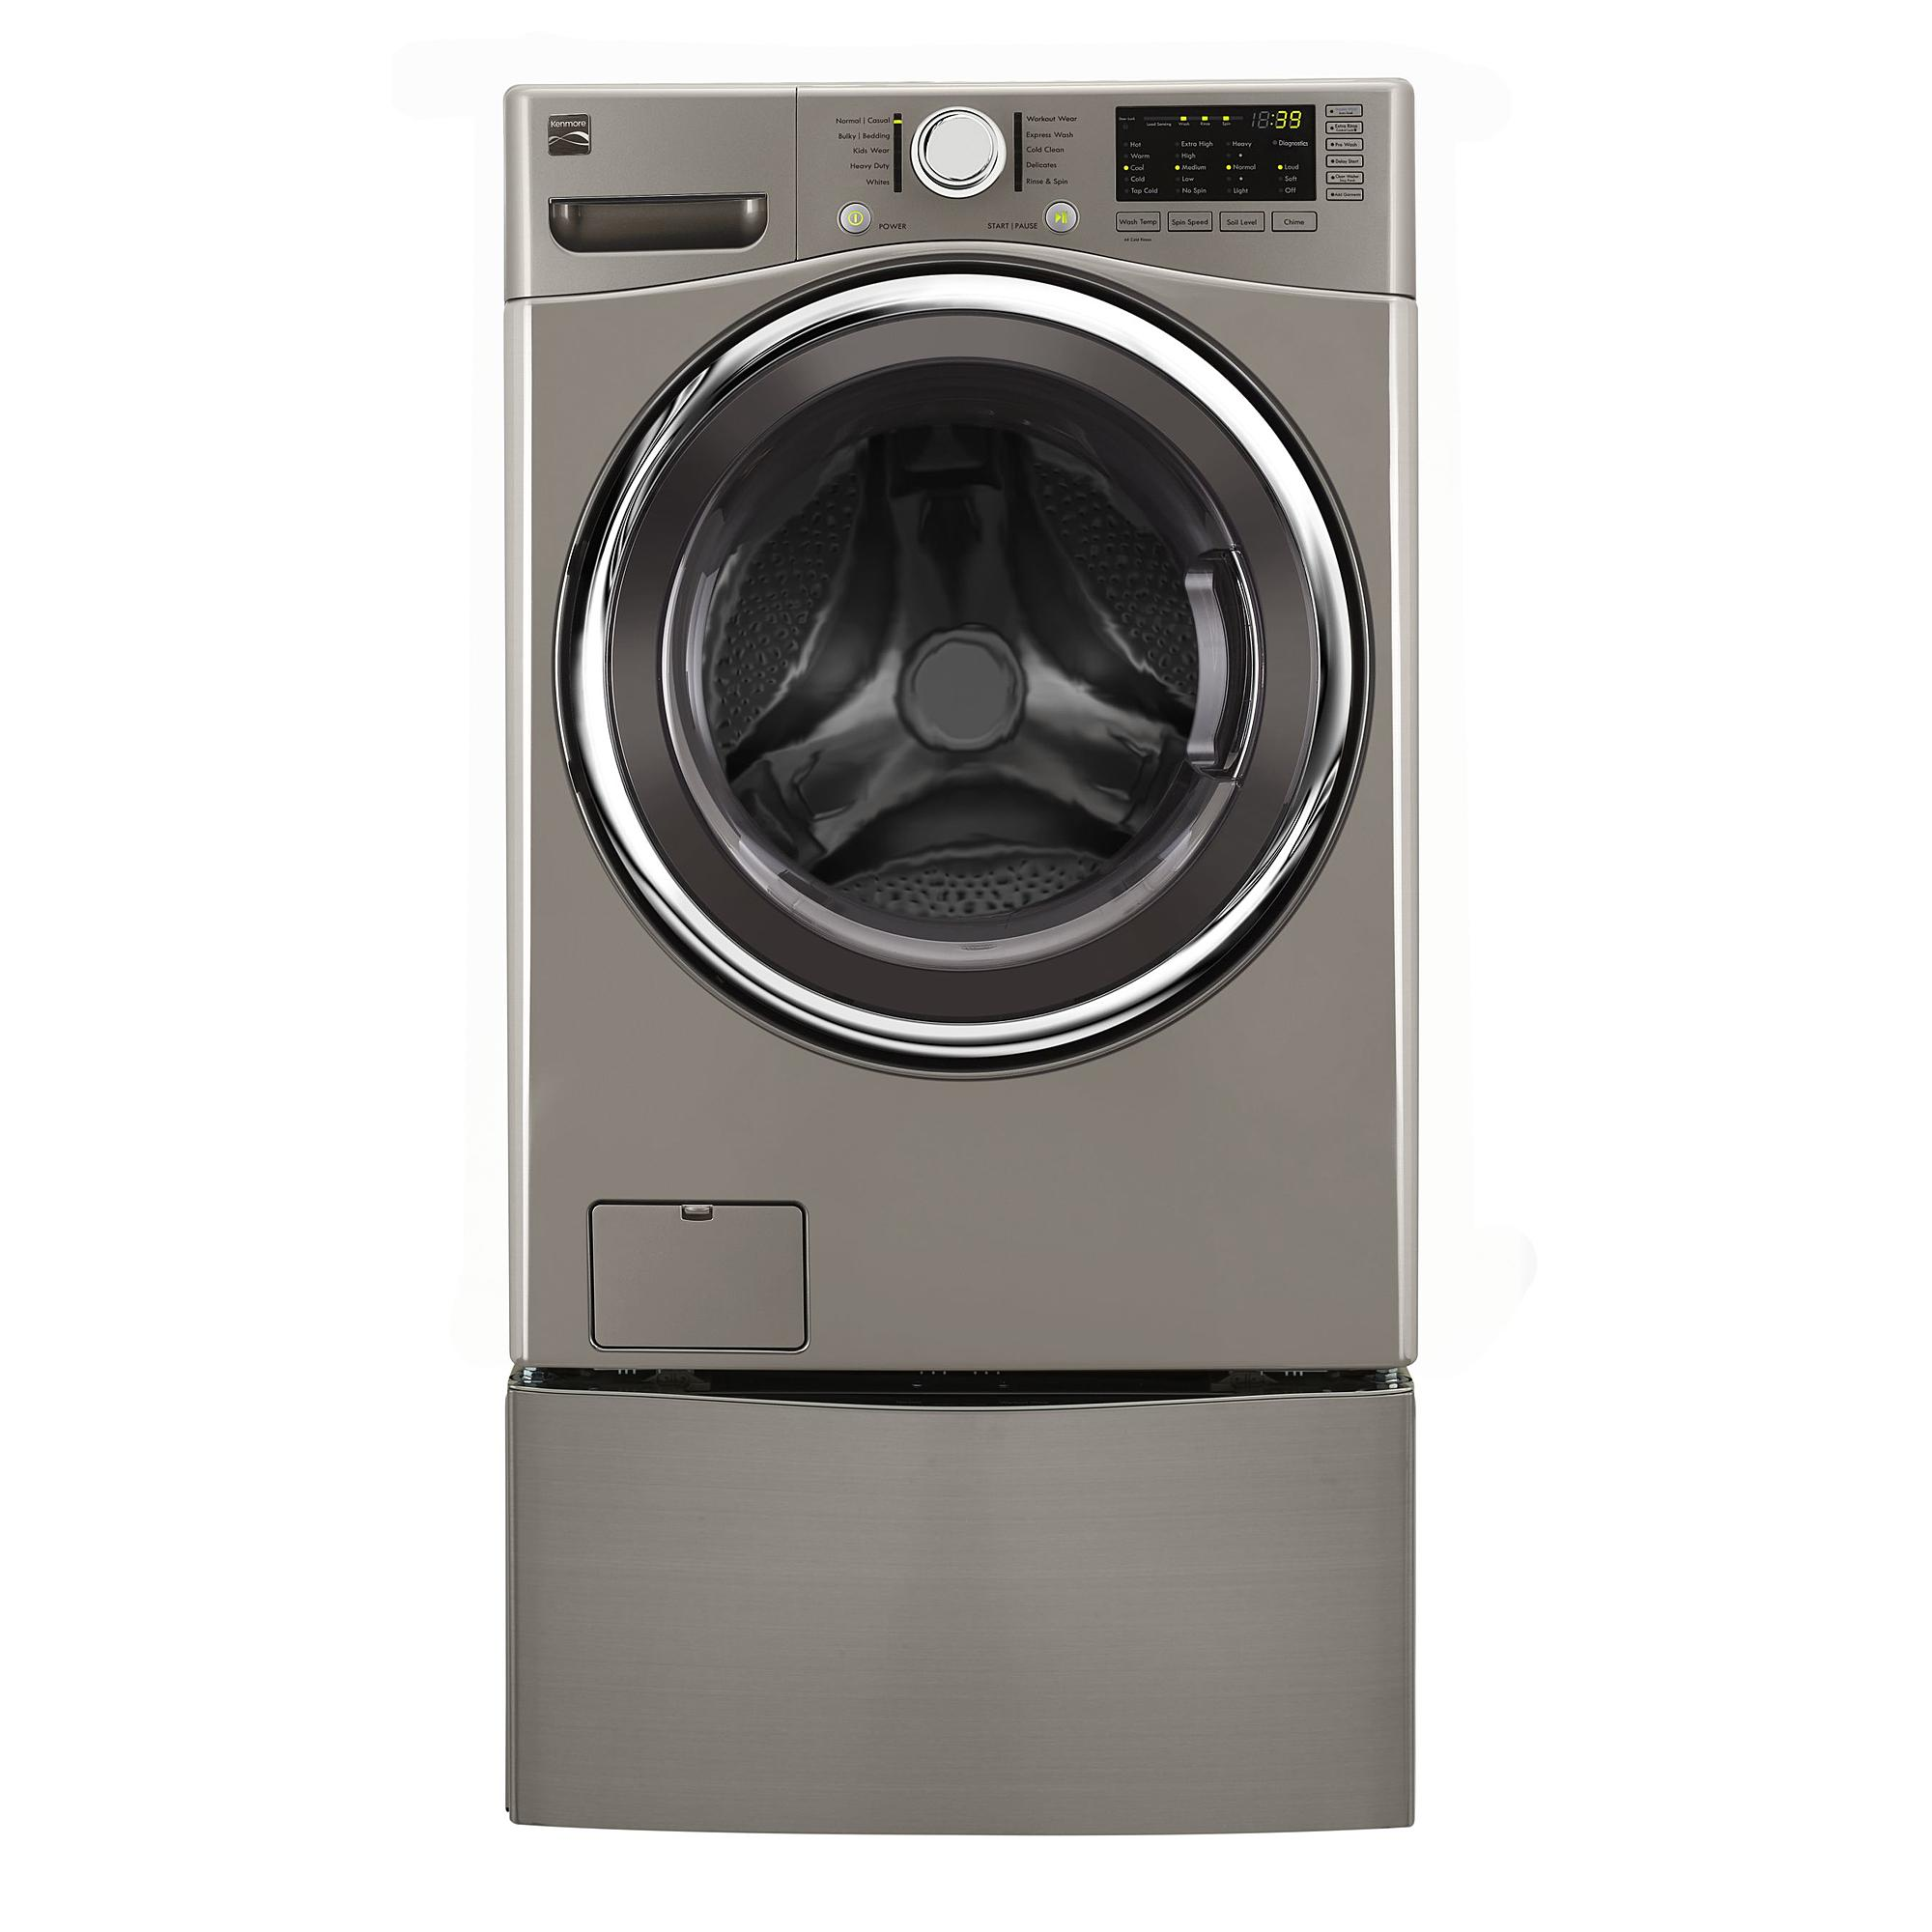 Common washer problems - won't advance to next cycle or stops in mid